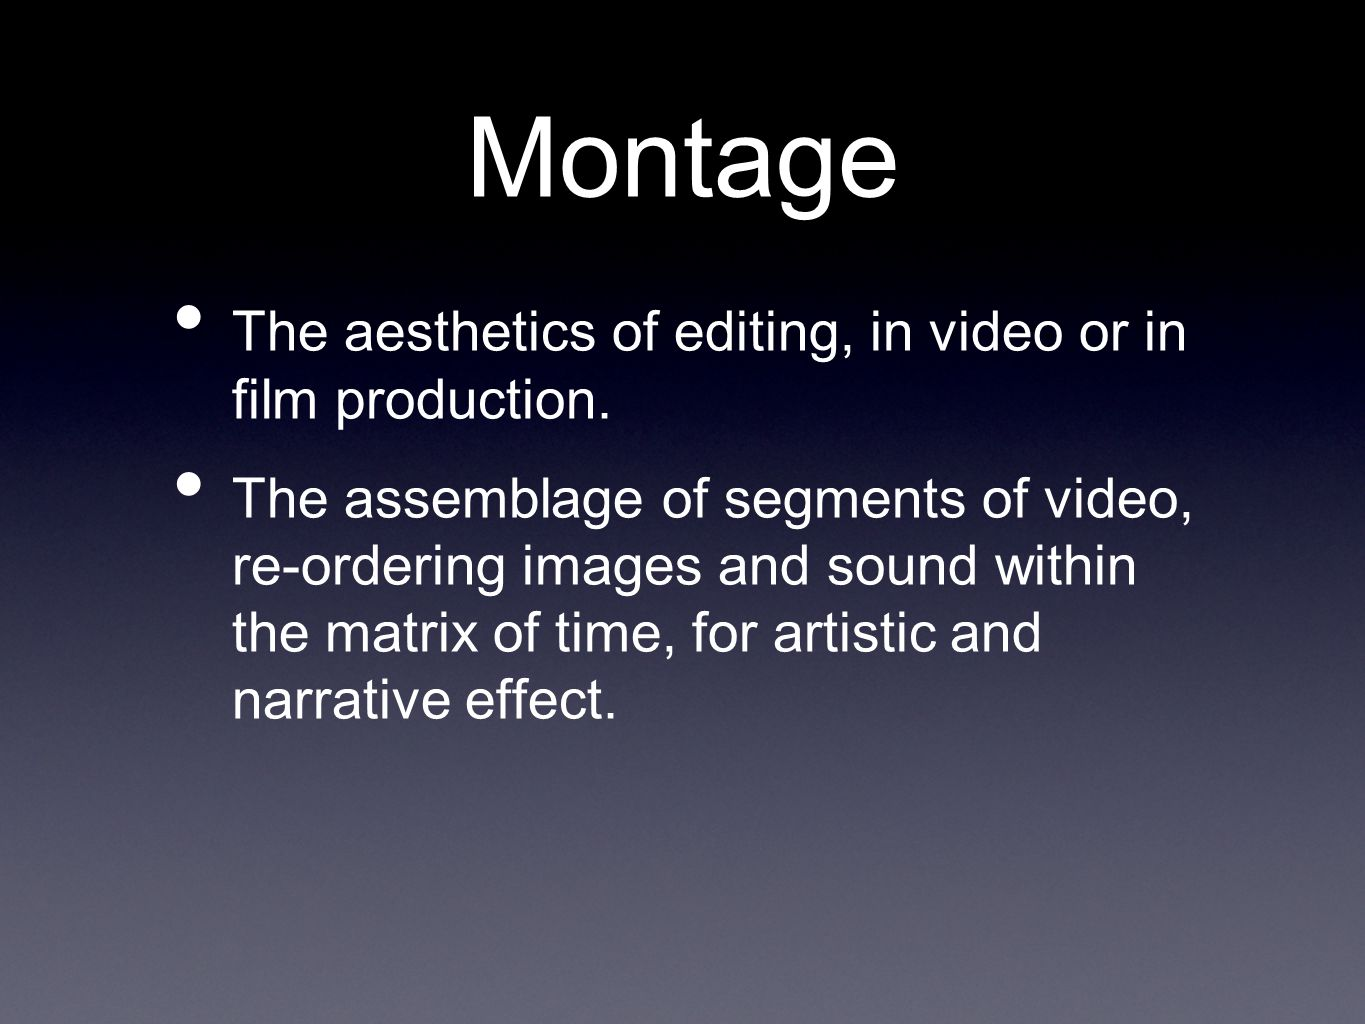 Montage The aesthetics of editing, in video or in film production.